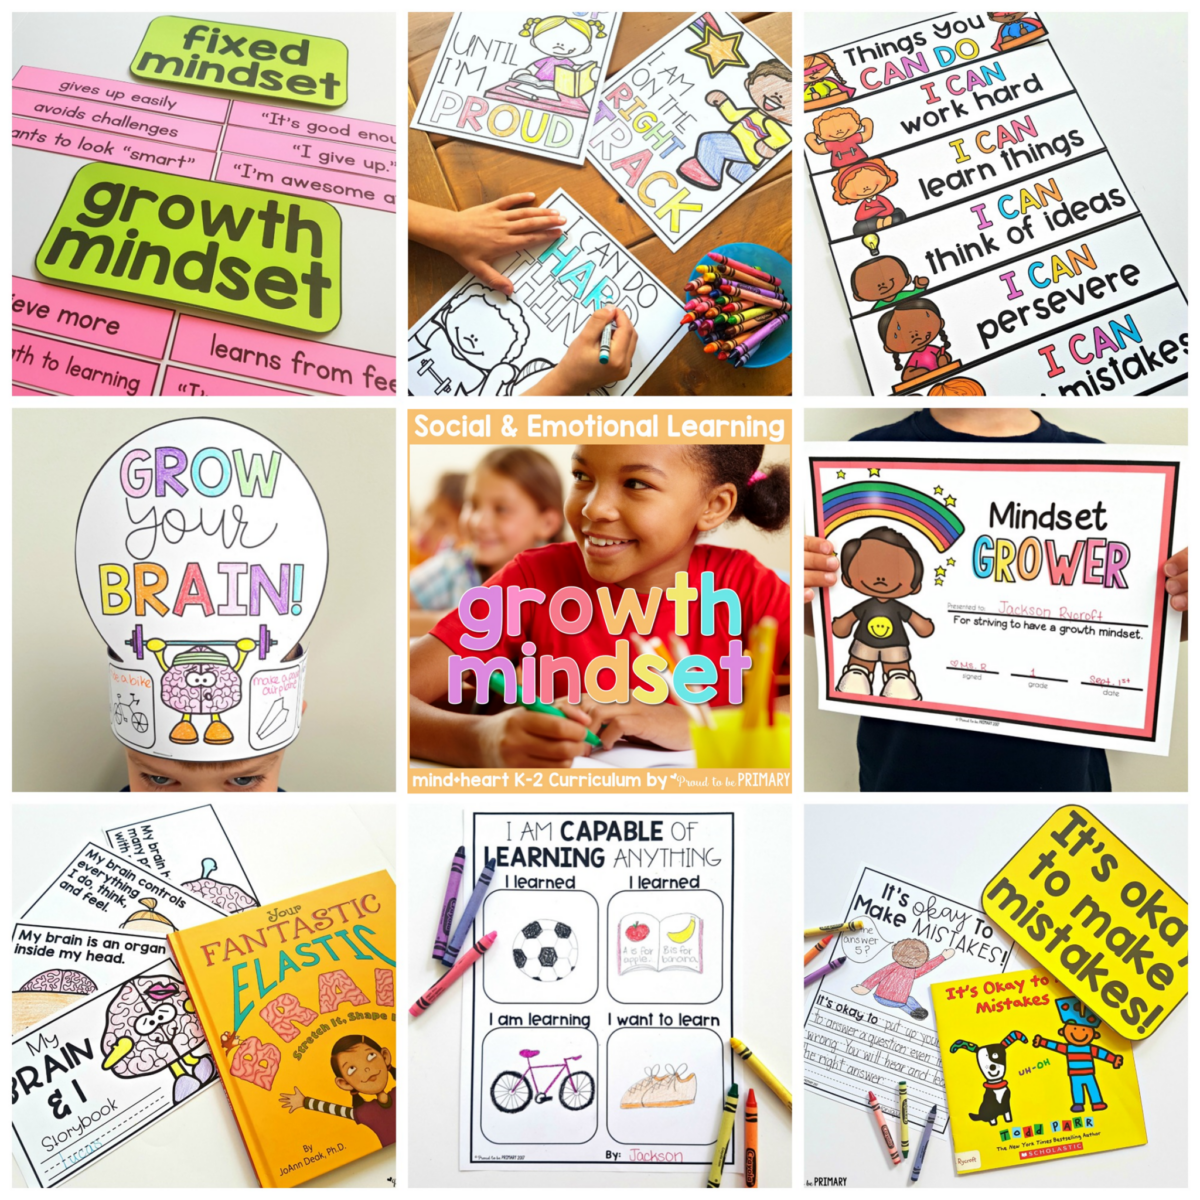 teach growth mindset in the classroom with a growth mindset unit for K-2